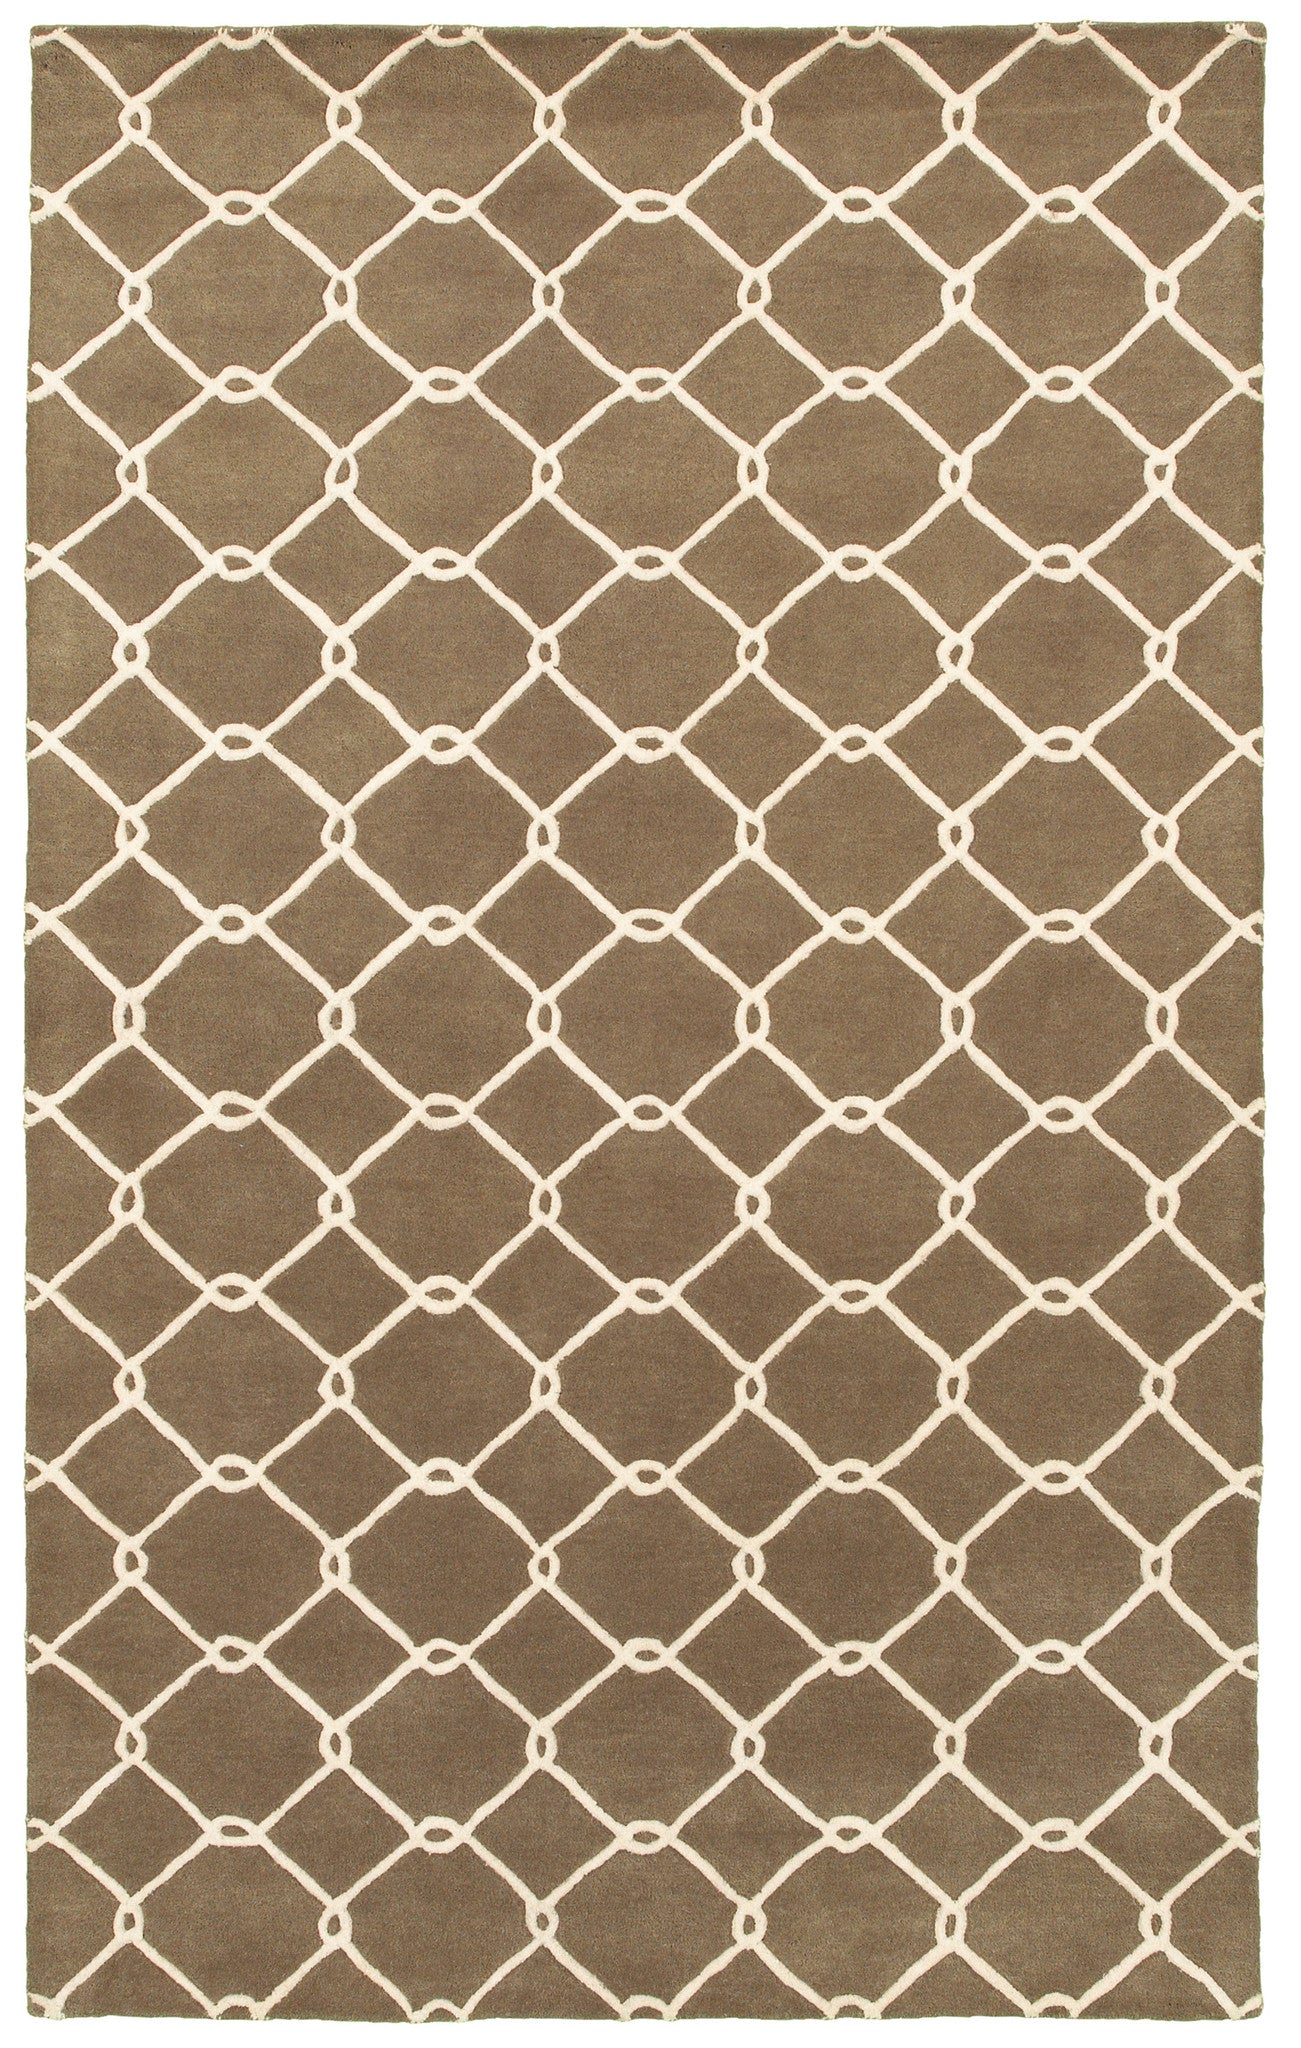 LR Resources Jaali 04903 Brown Area Rug